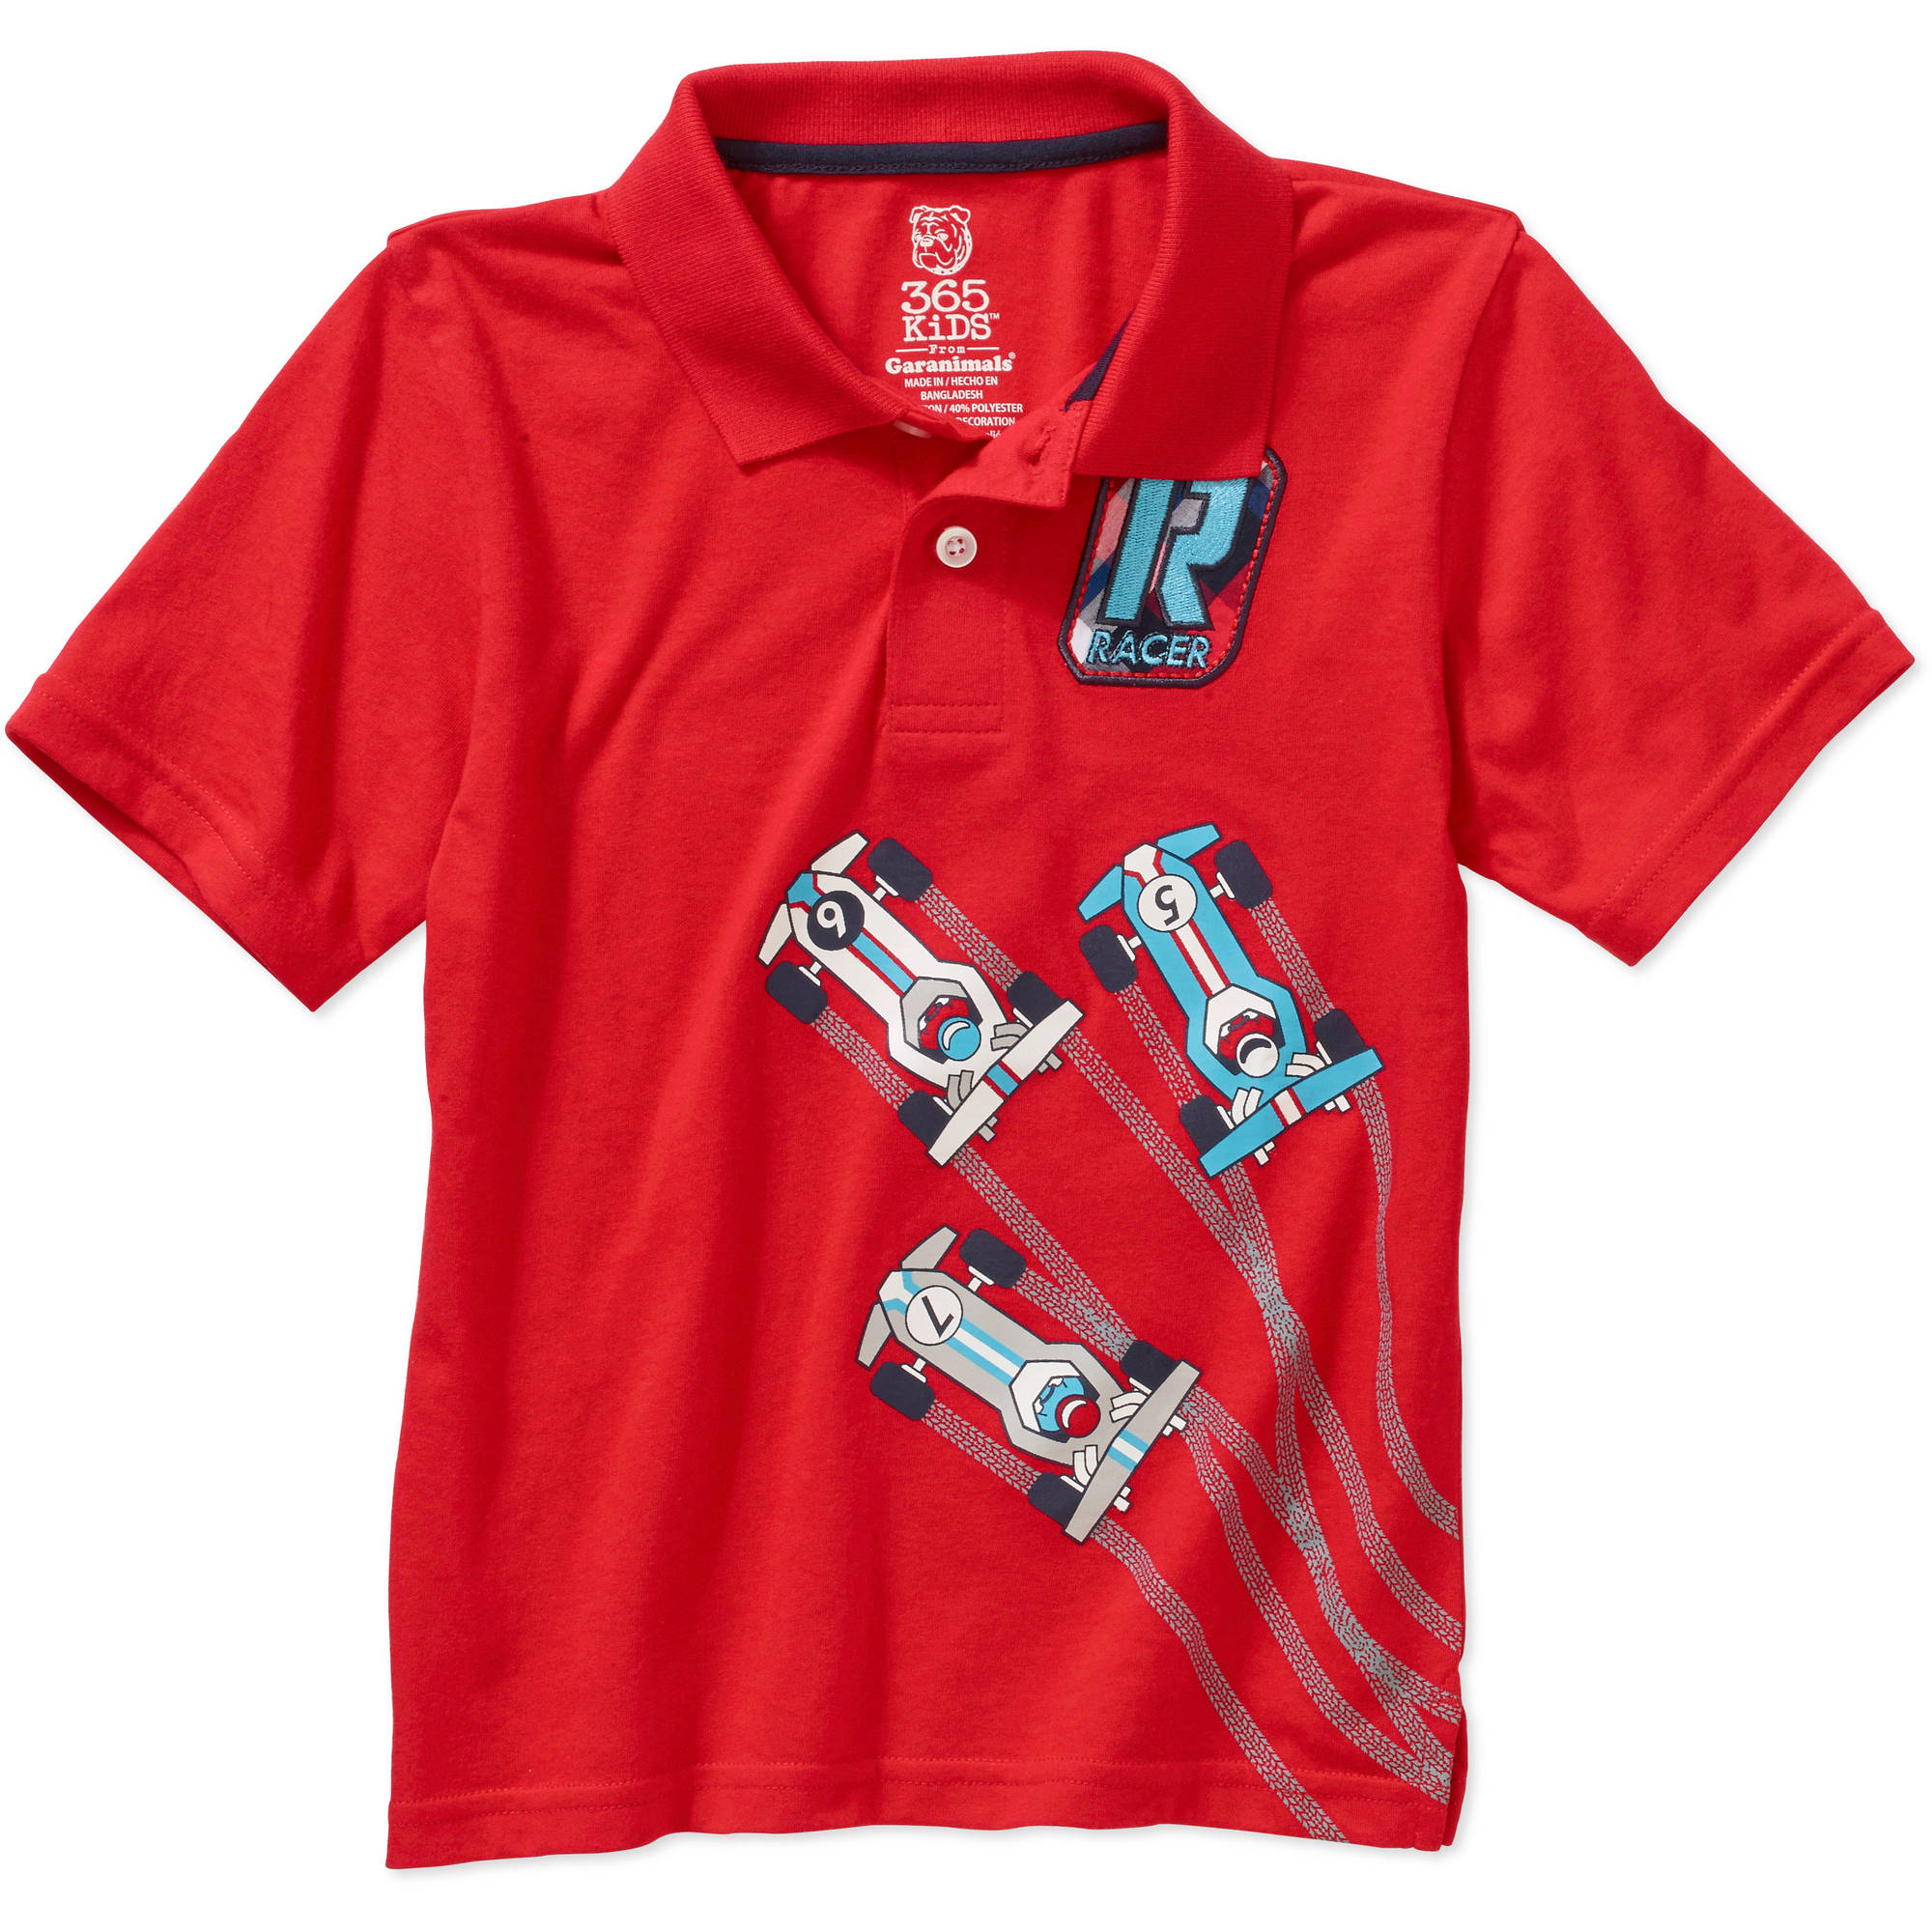 365 Kids From Garanimals Boys' Short Sleeve Graphic Applique Polo